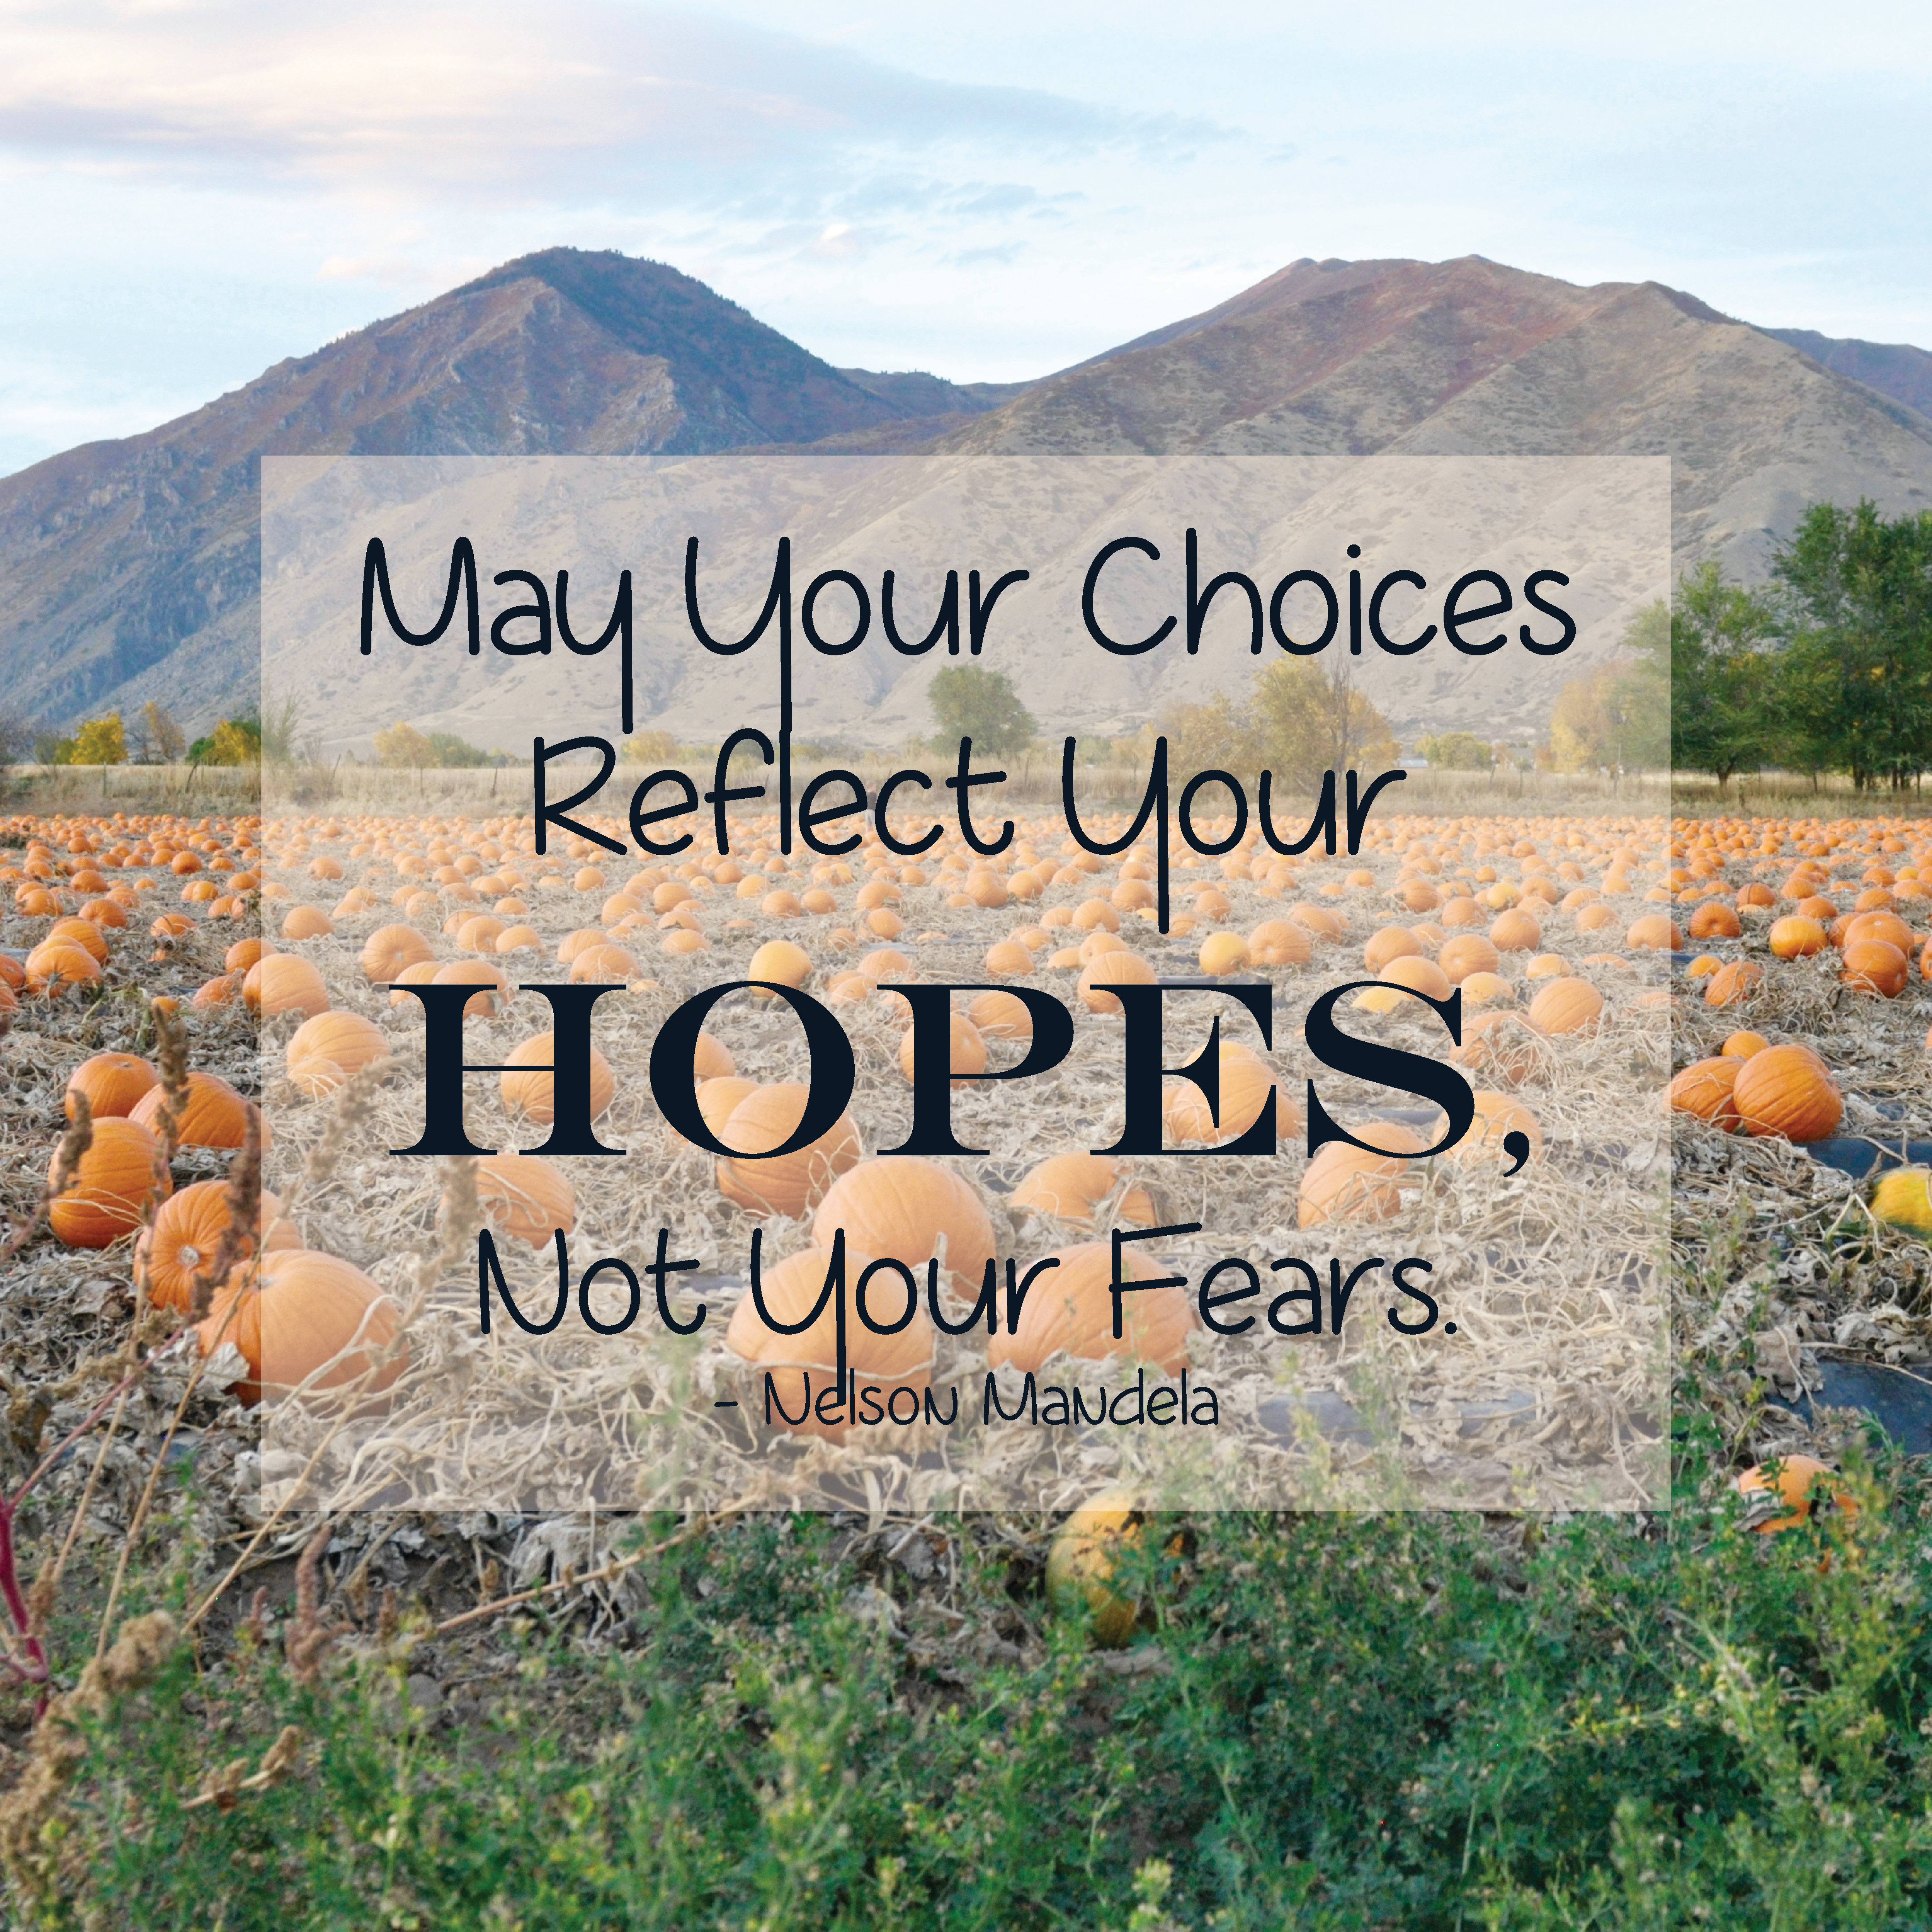 May Your Choices Reflect Your Hopes Not Your Fears Quote